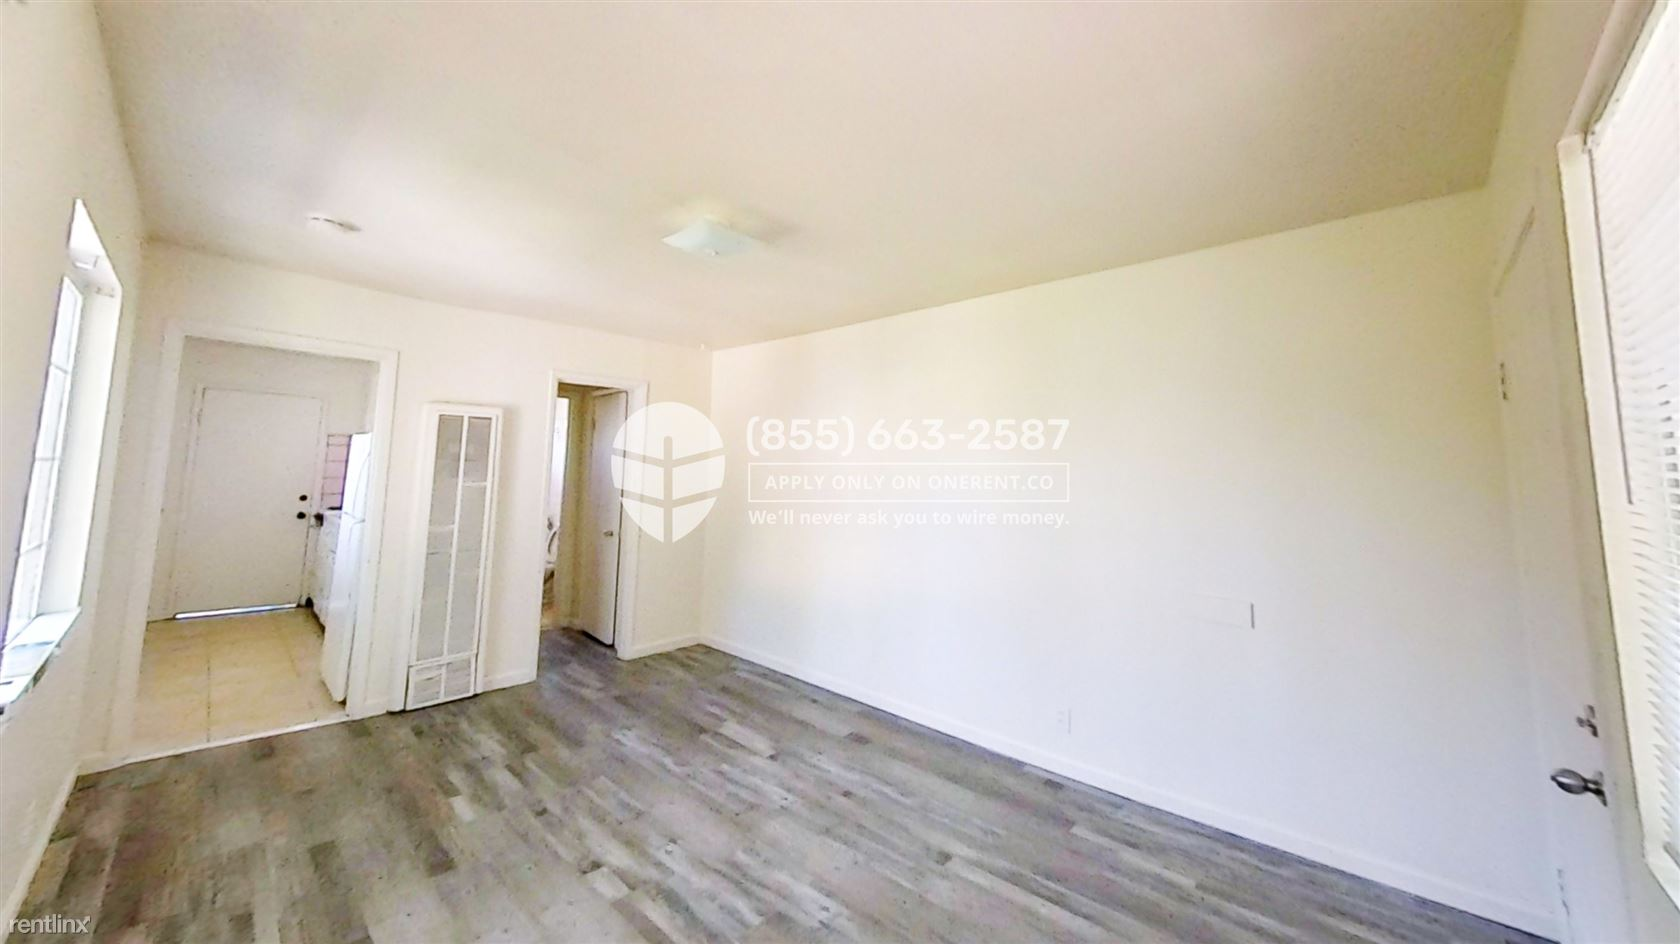 368 N 4th St for rent